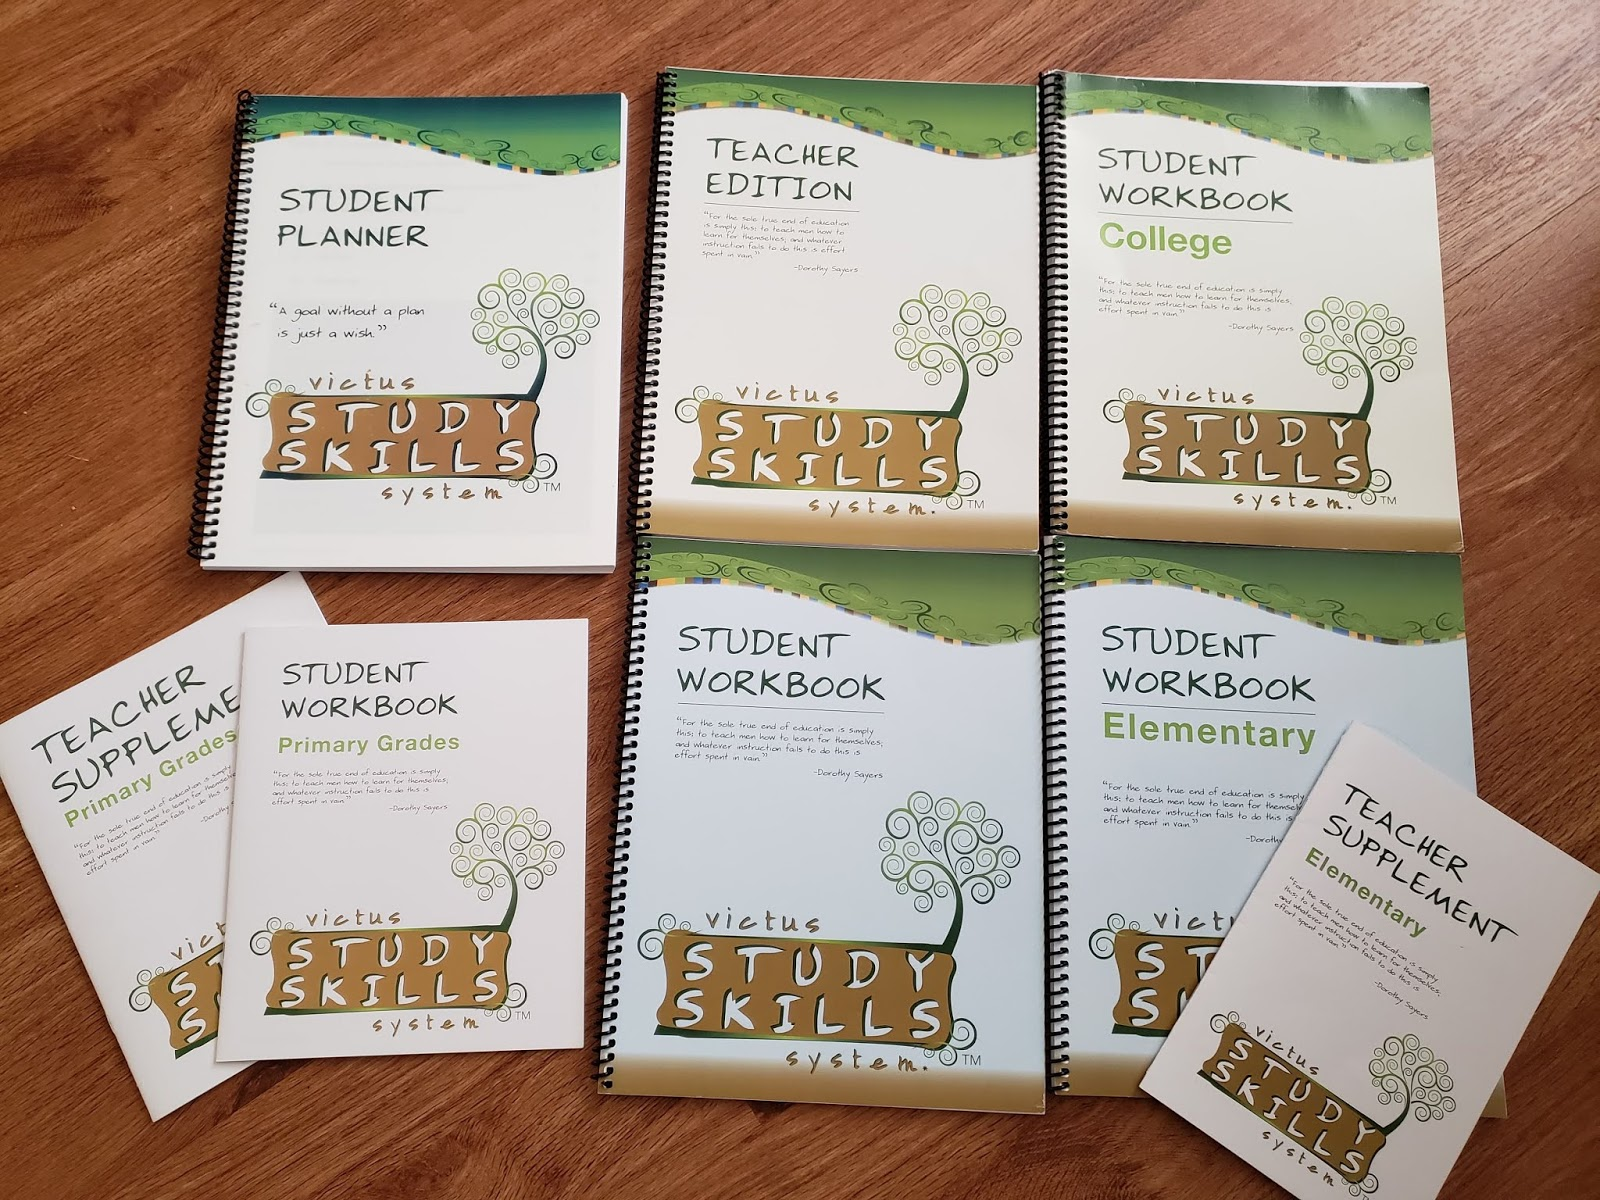 Walking Home Victus Study Skills System A New Tos Review